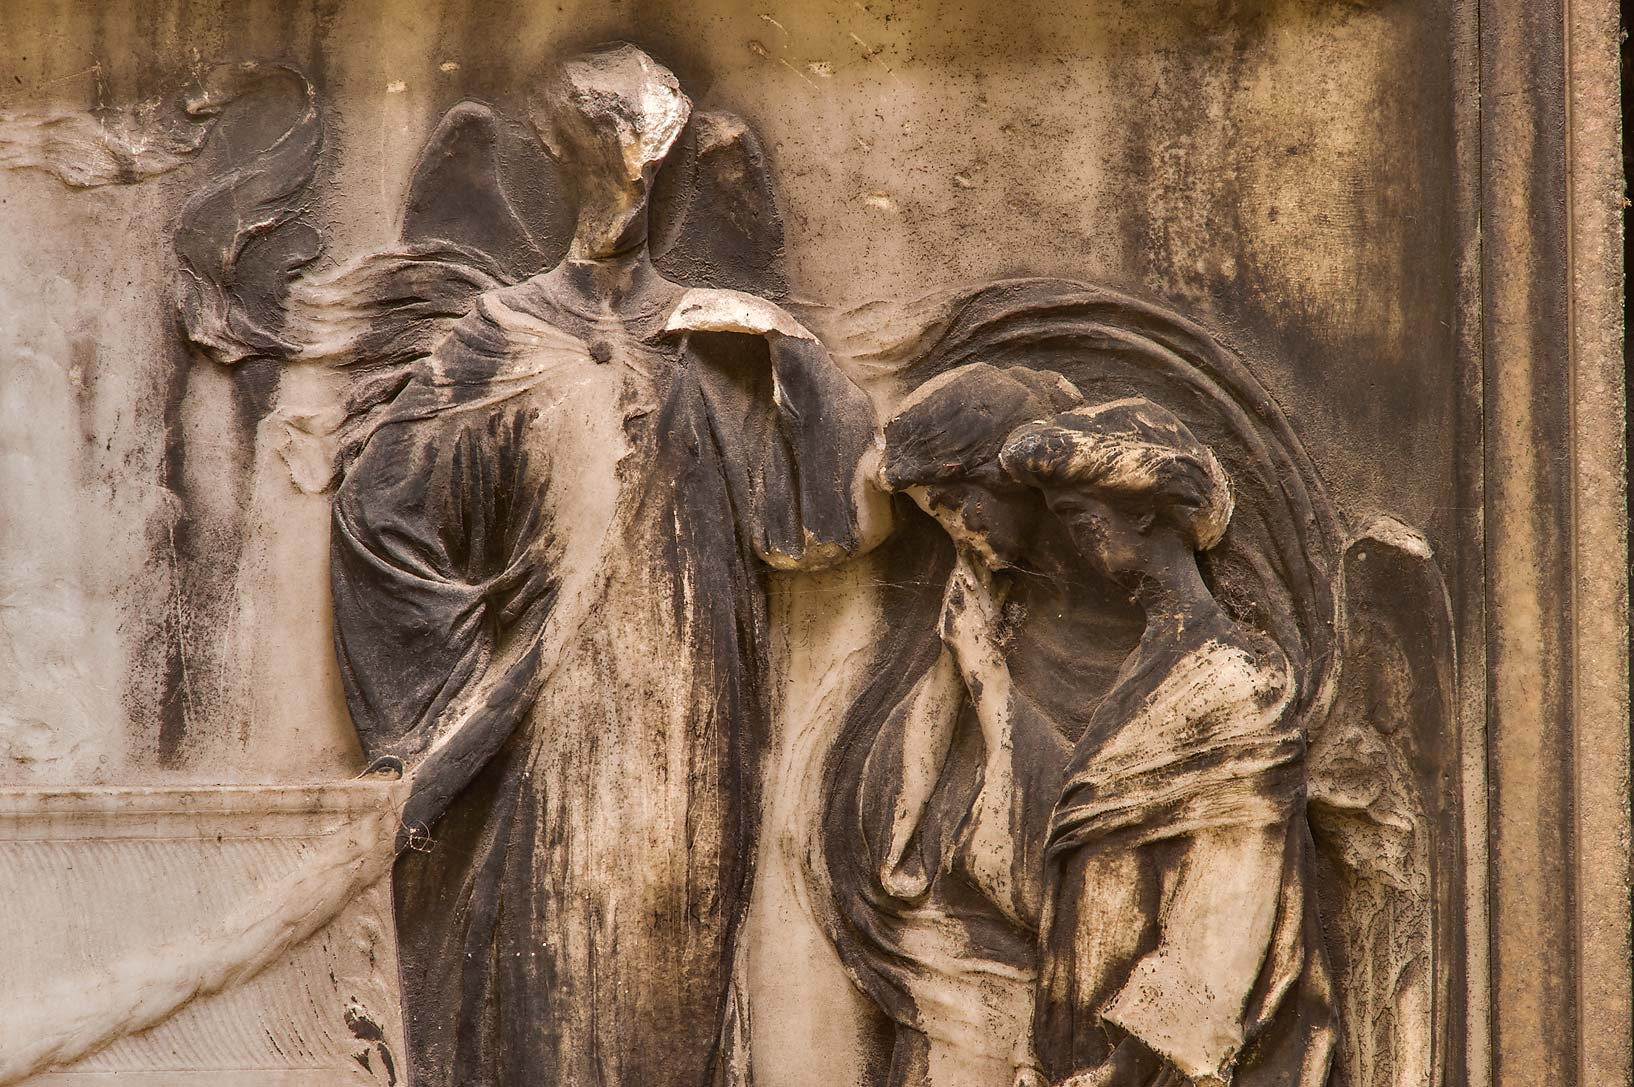 Remains of marble figures in a stone mausoleum in...Prospekt. St.Petersburg, Russia